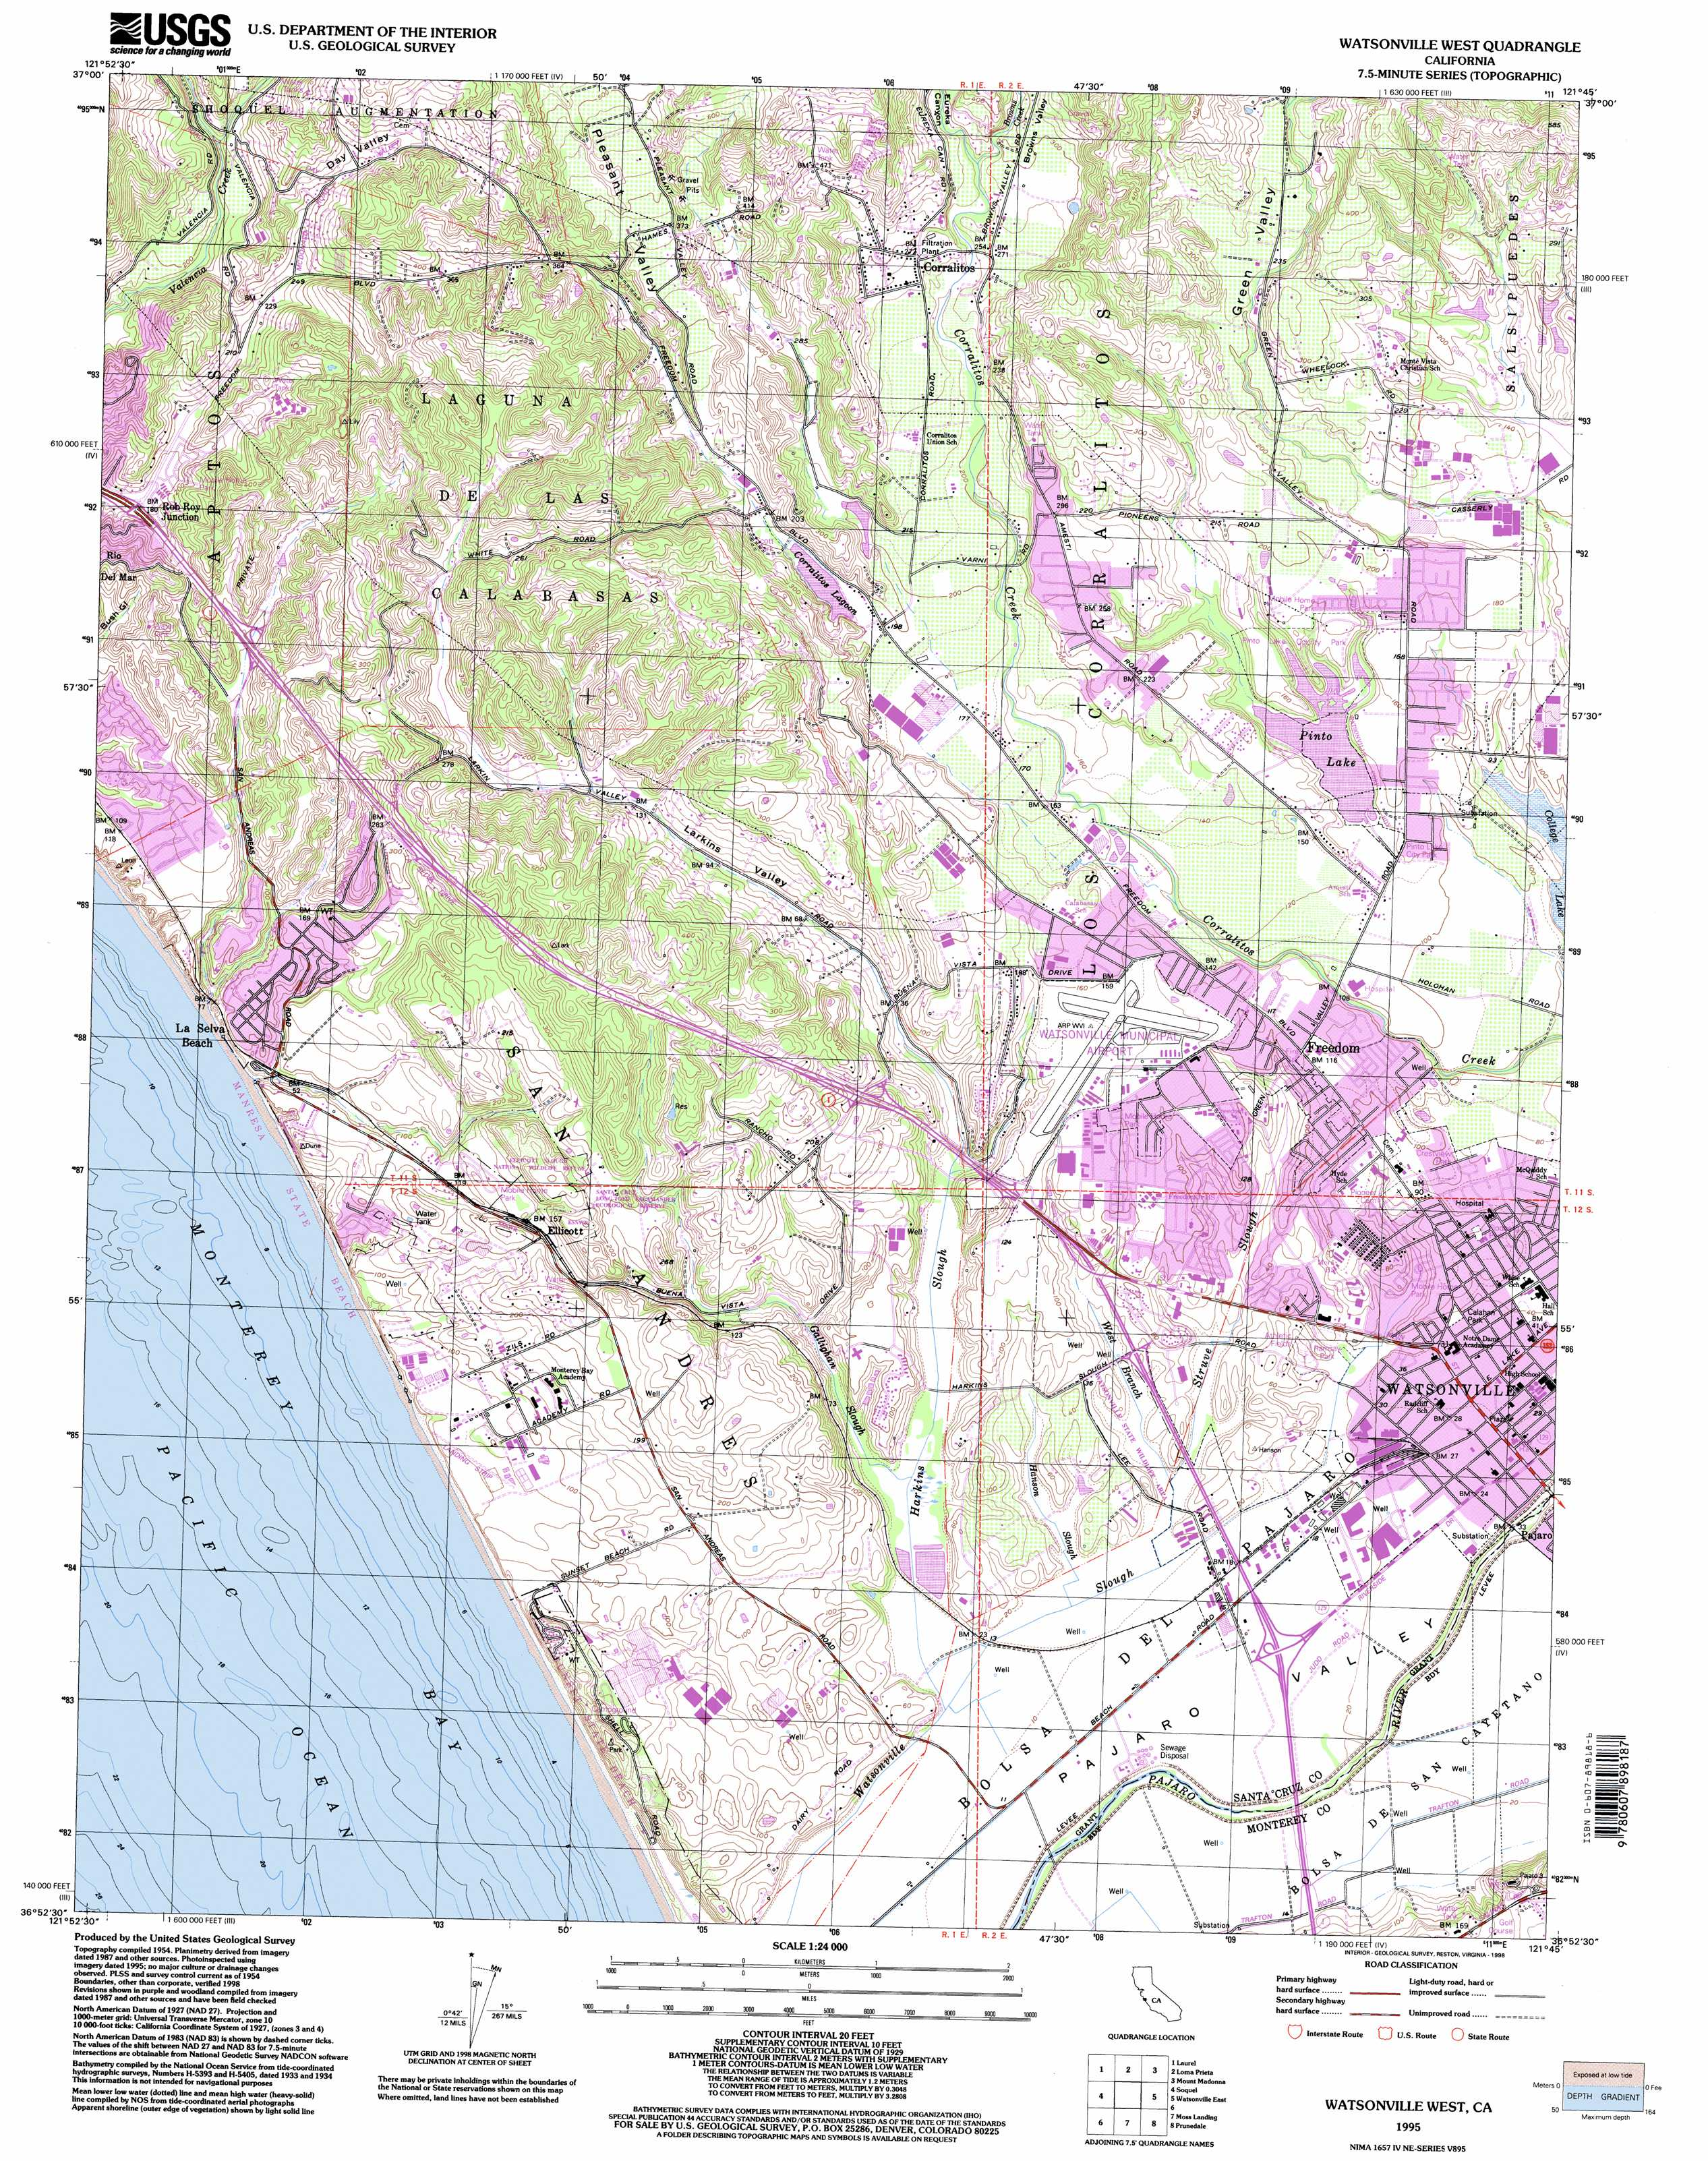 Watsonville West topographic map CA USGS Topo Quad 36121h7